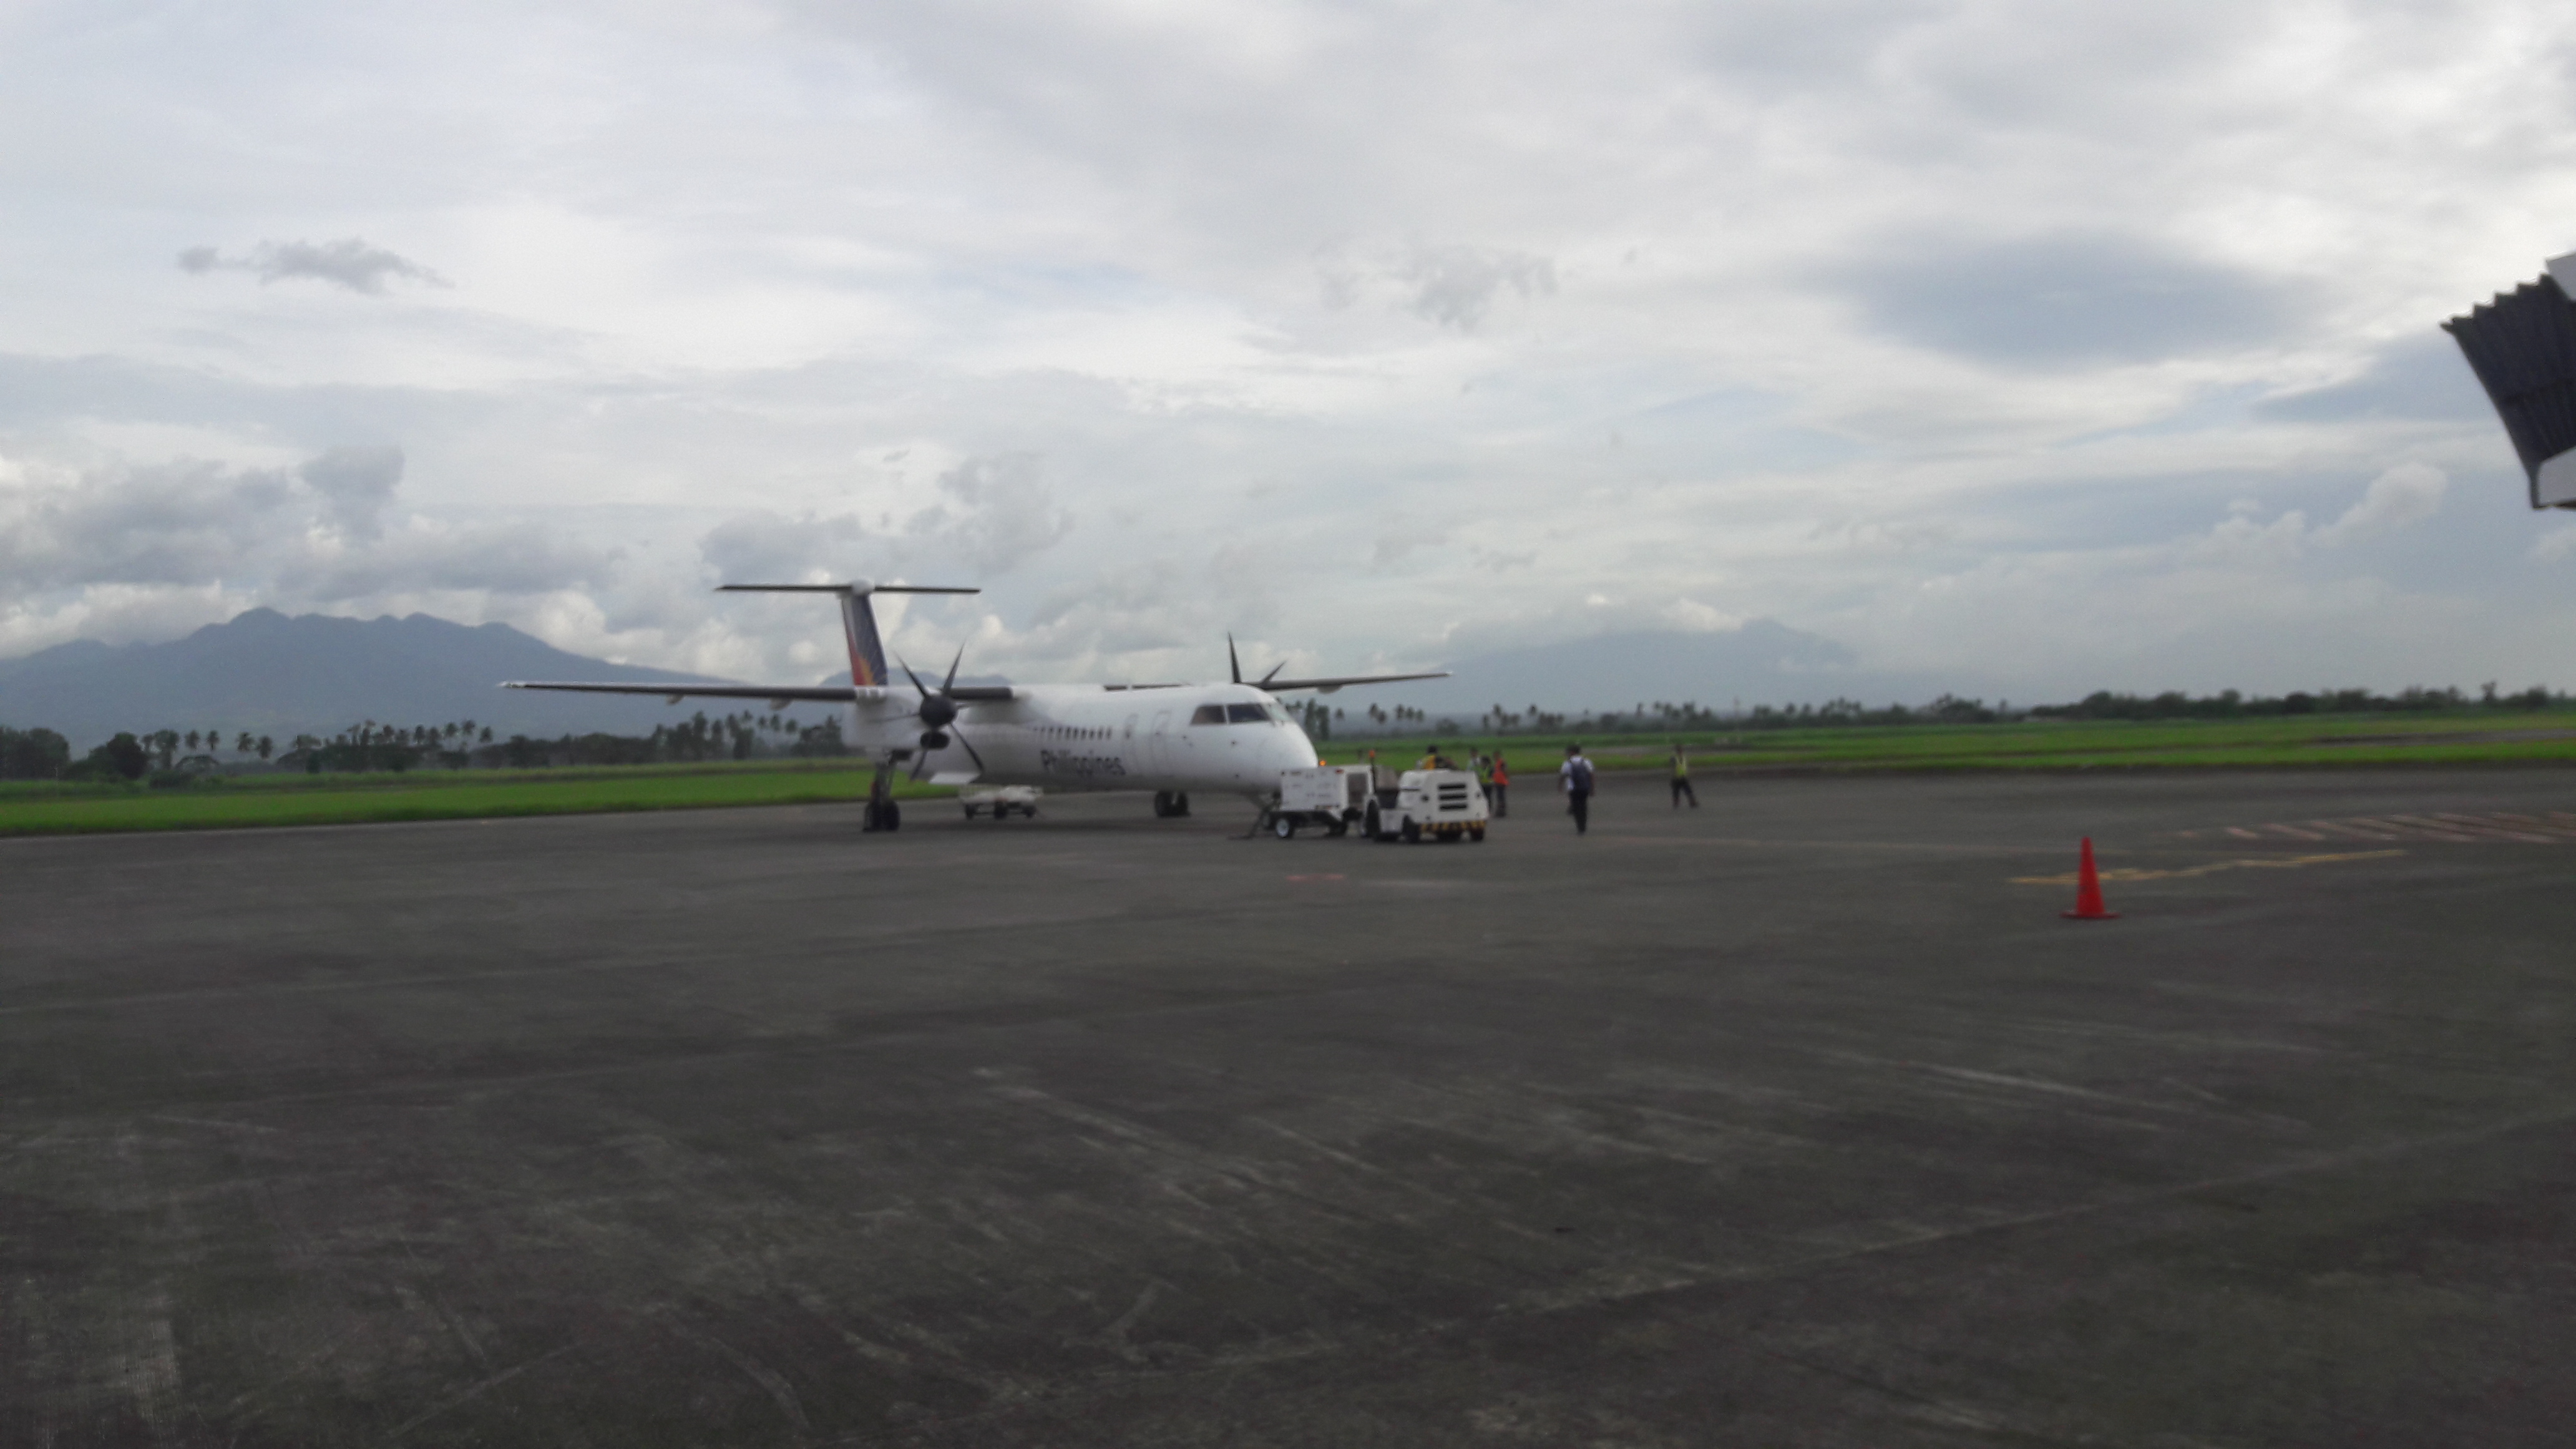 bacolod aiport bombardier Q400 to cebu jan18